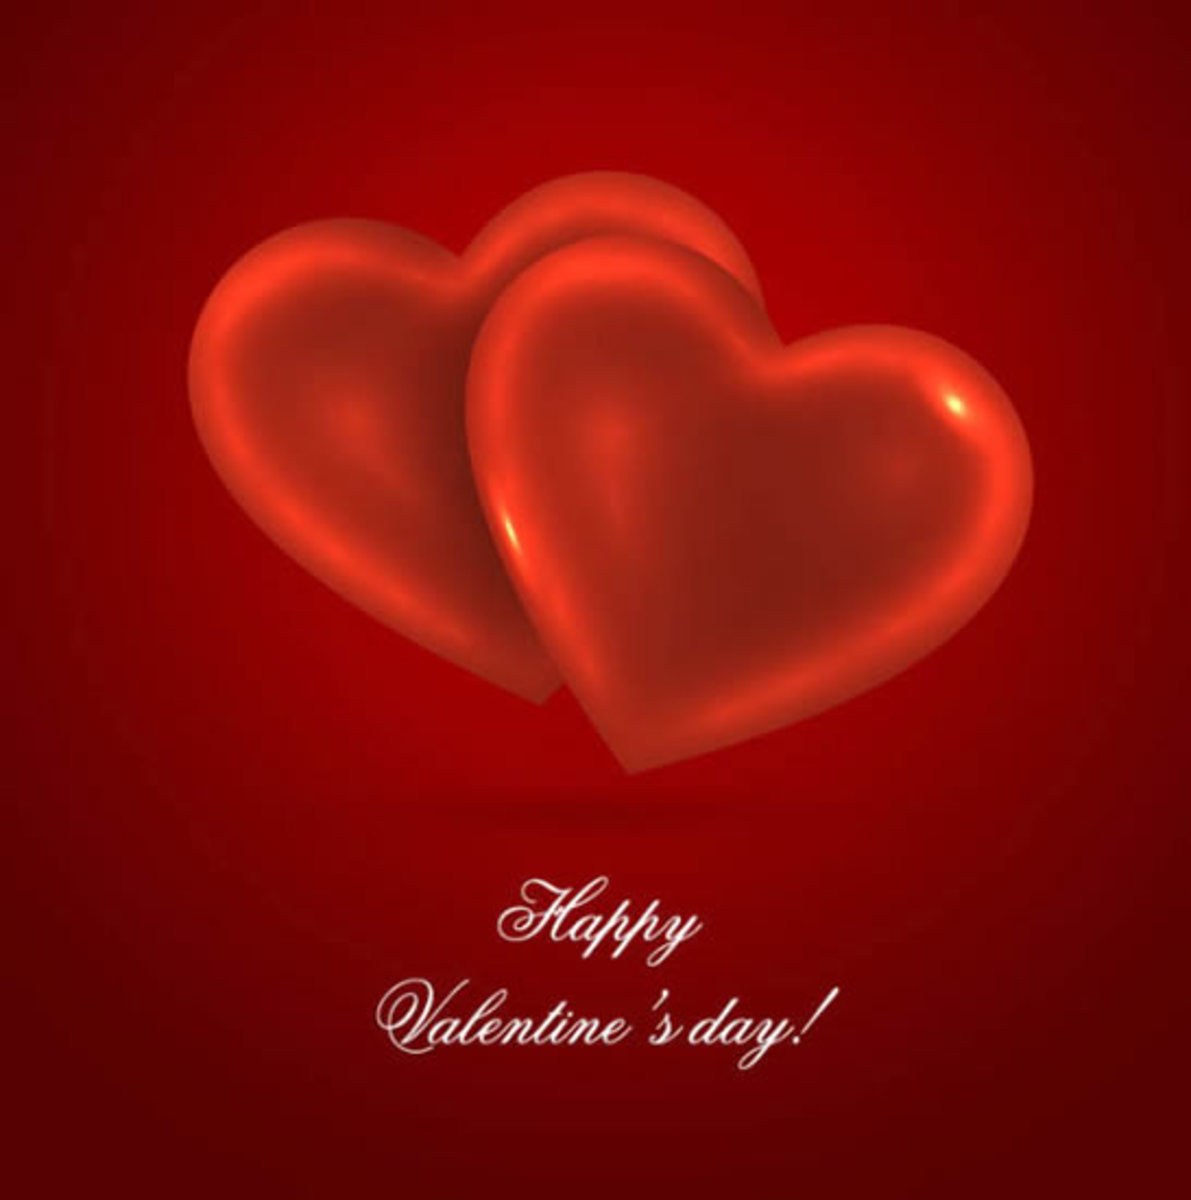 Happy Valentine's Day with Double Heart Image